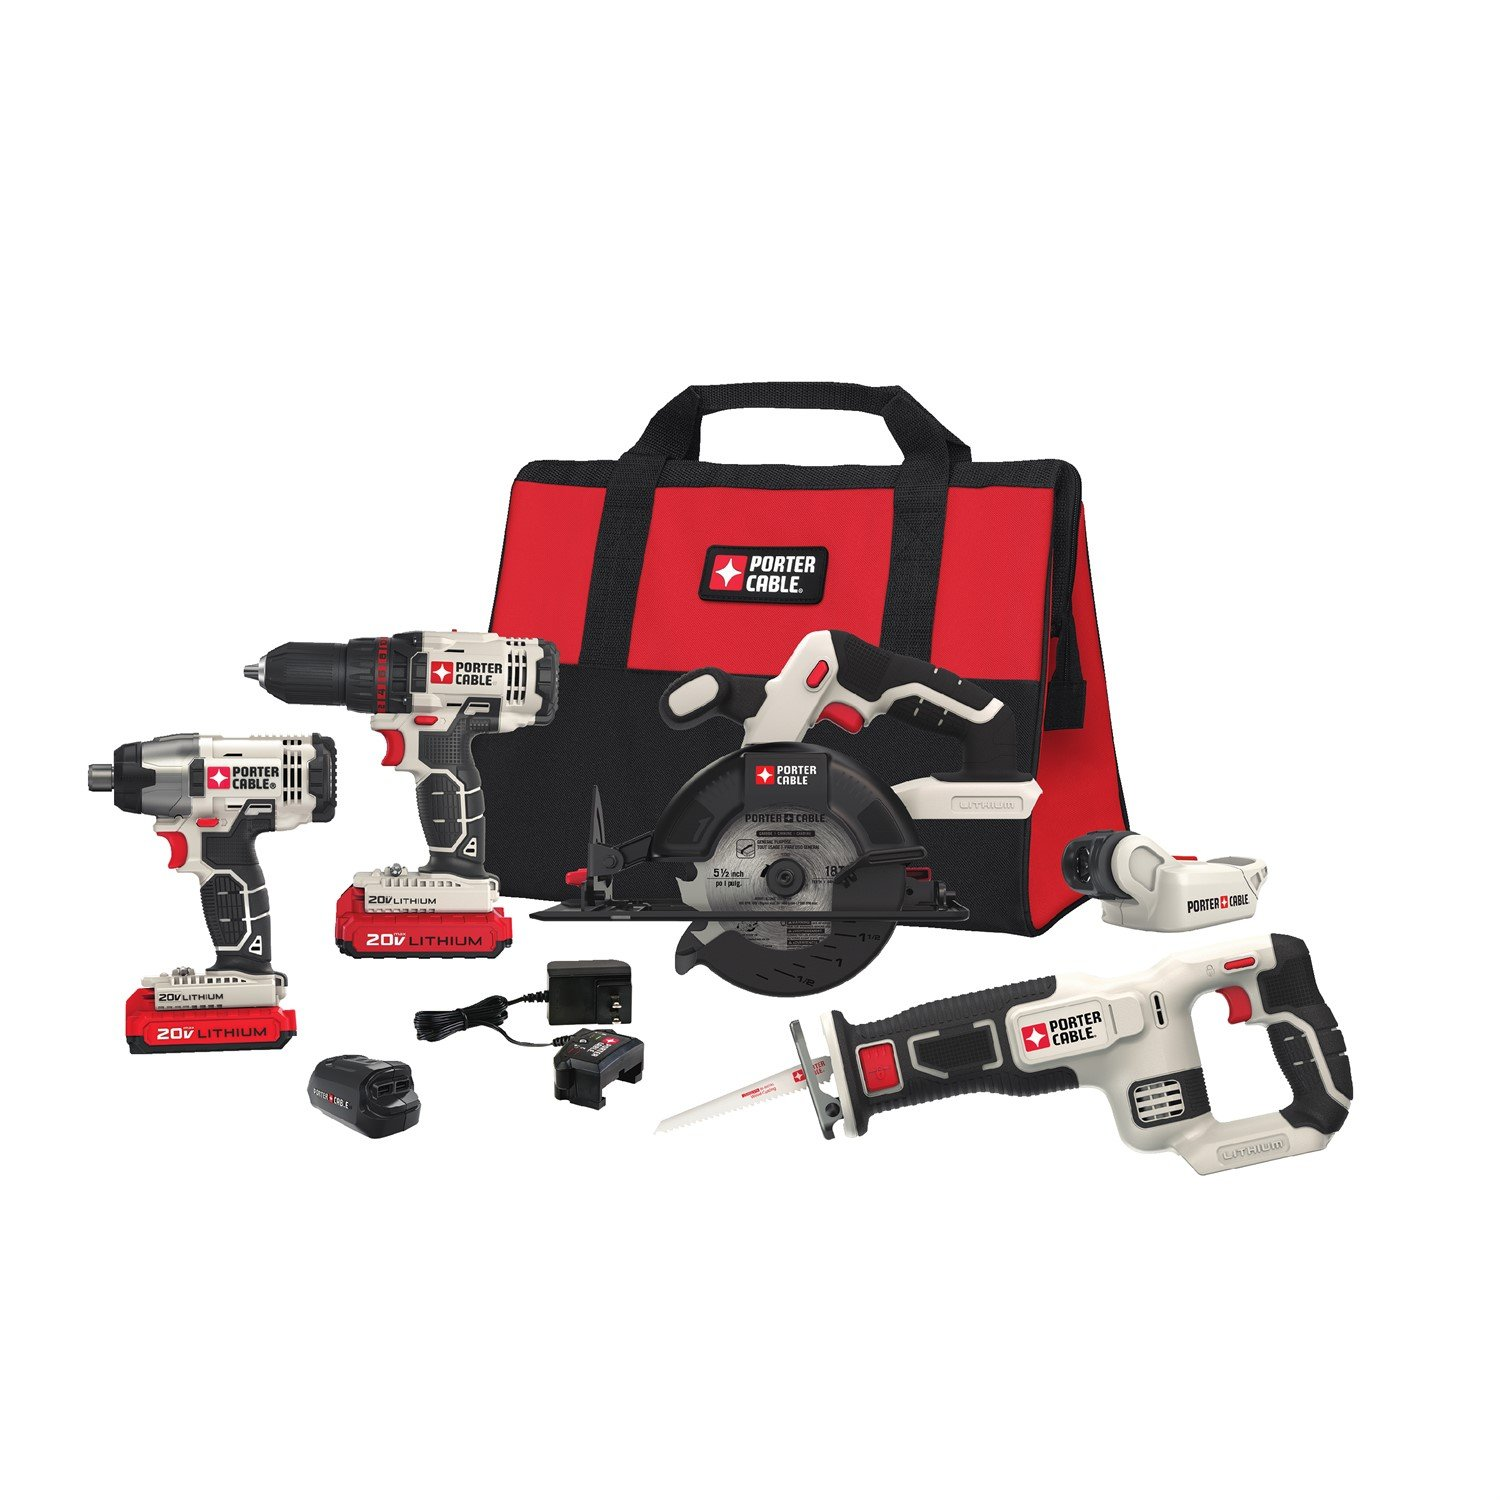 PORTER CABLE PCCK617L6 20V MAX Lithium Ion 6 Tool Combo Kit with Free USB Device